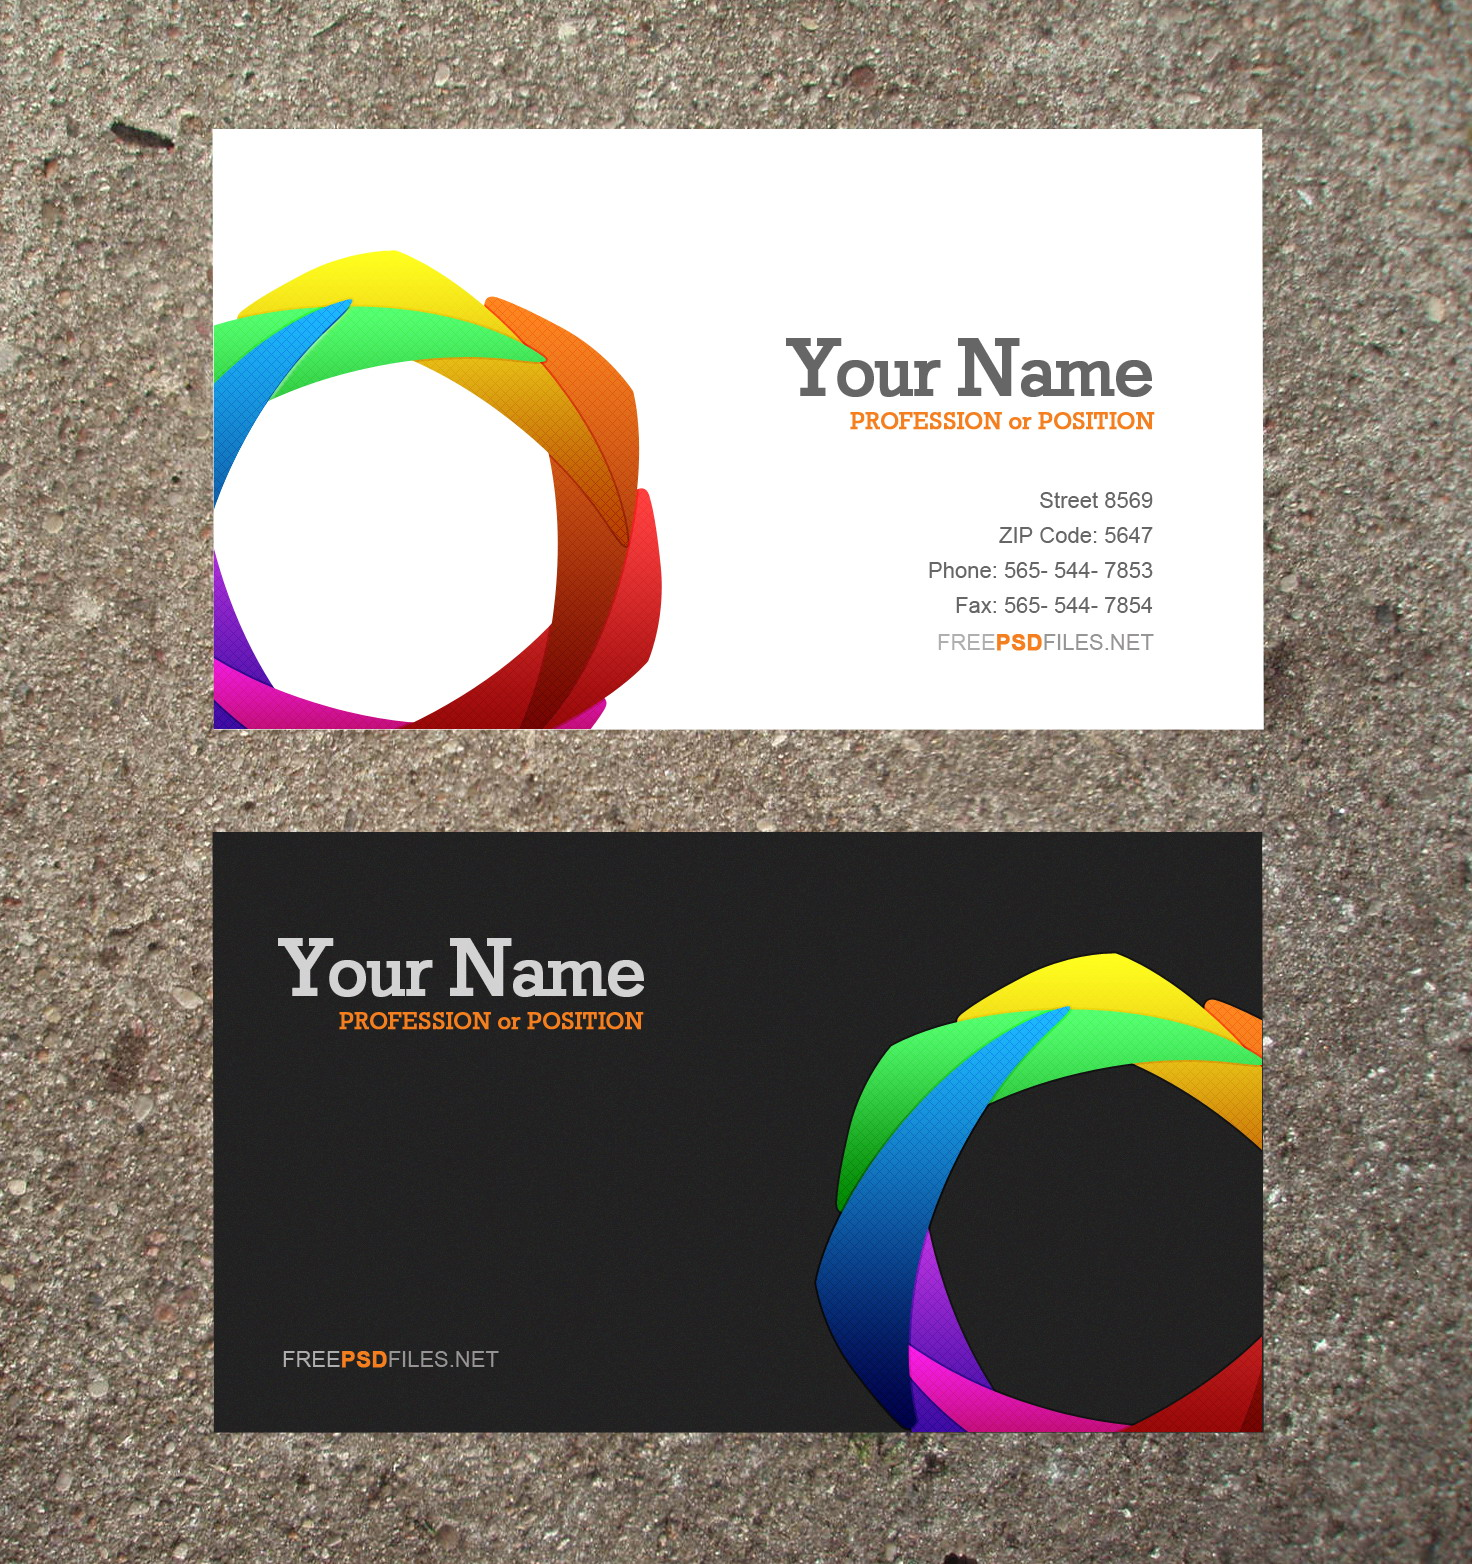 Business card template 28 images recksana business card template business card template 10 modern business card psd template free images free accmission